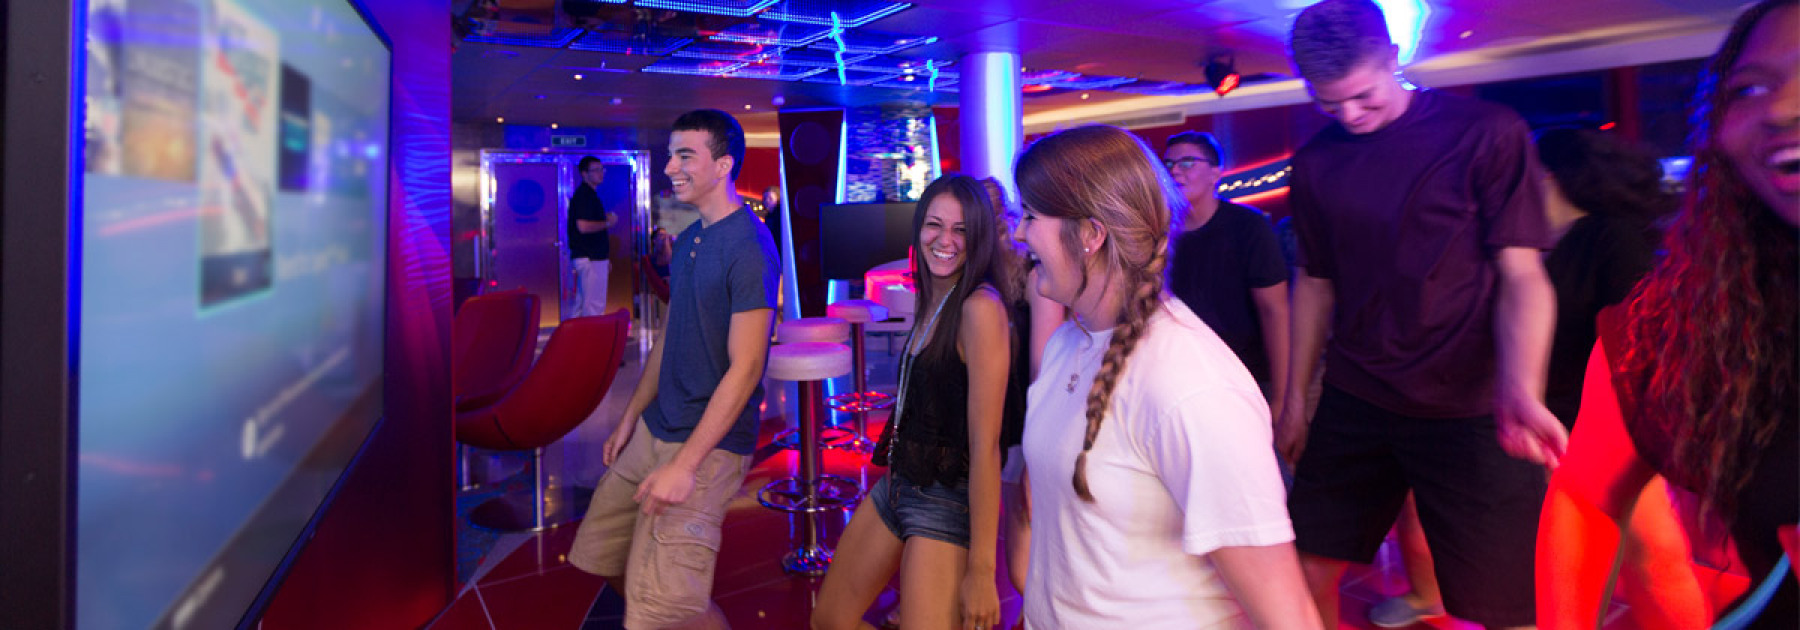 Carnival Valor digital-play-teens-2.jpg